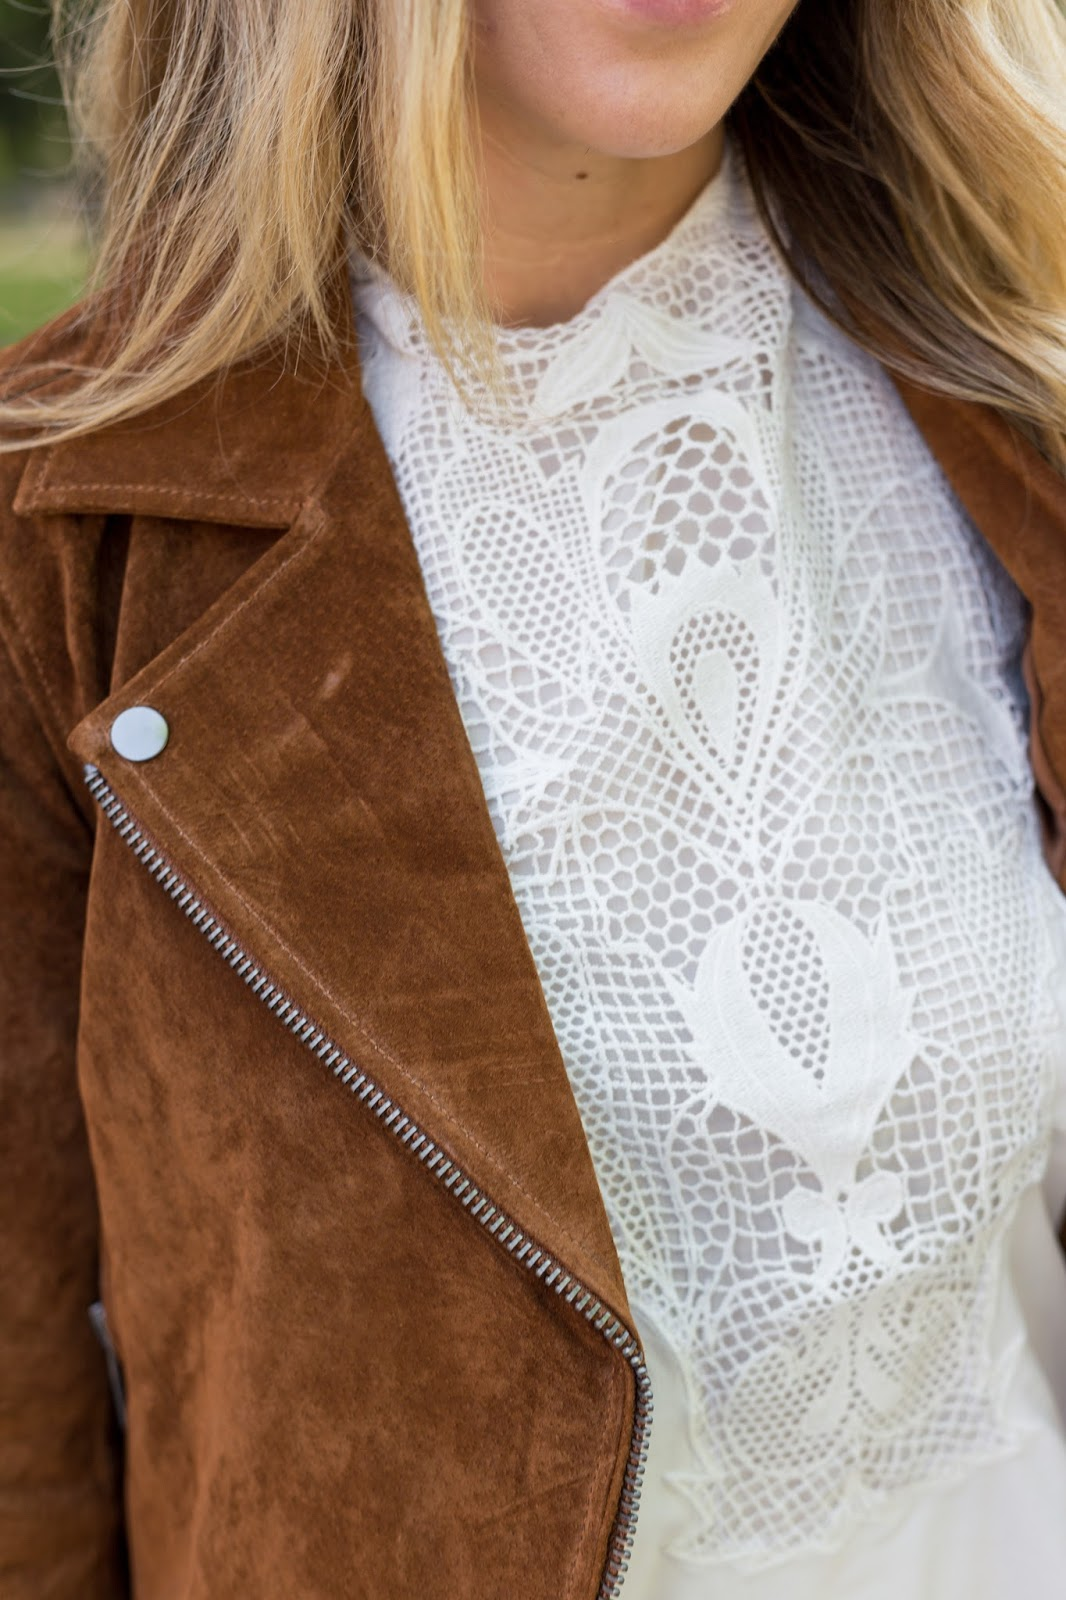 Suede Jacket Lace Top  - The Must Have Brown Suede Jacket For Fall by Colorado fashion blog